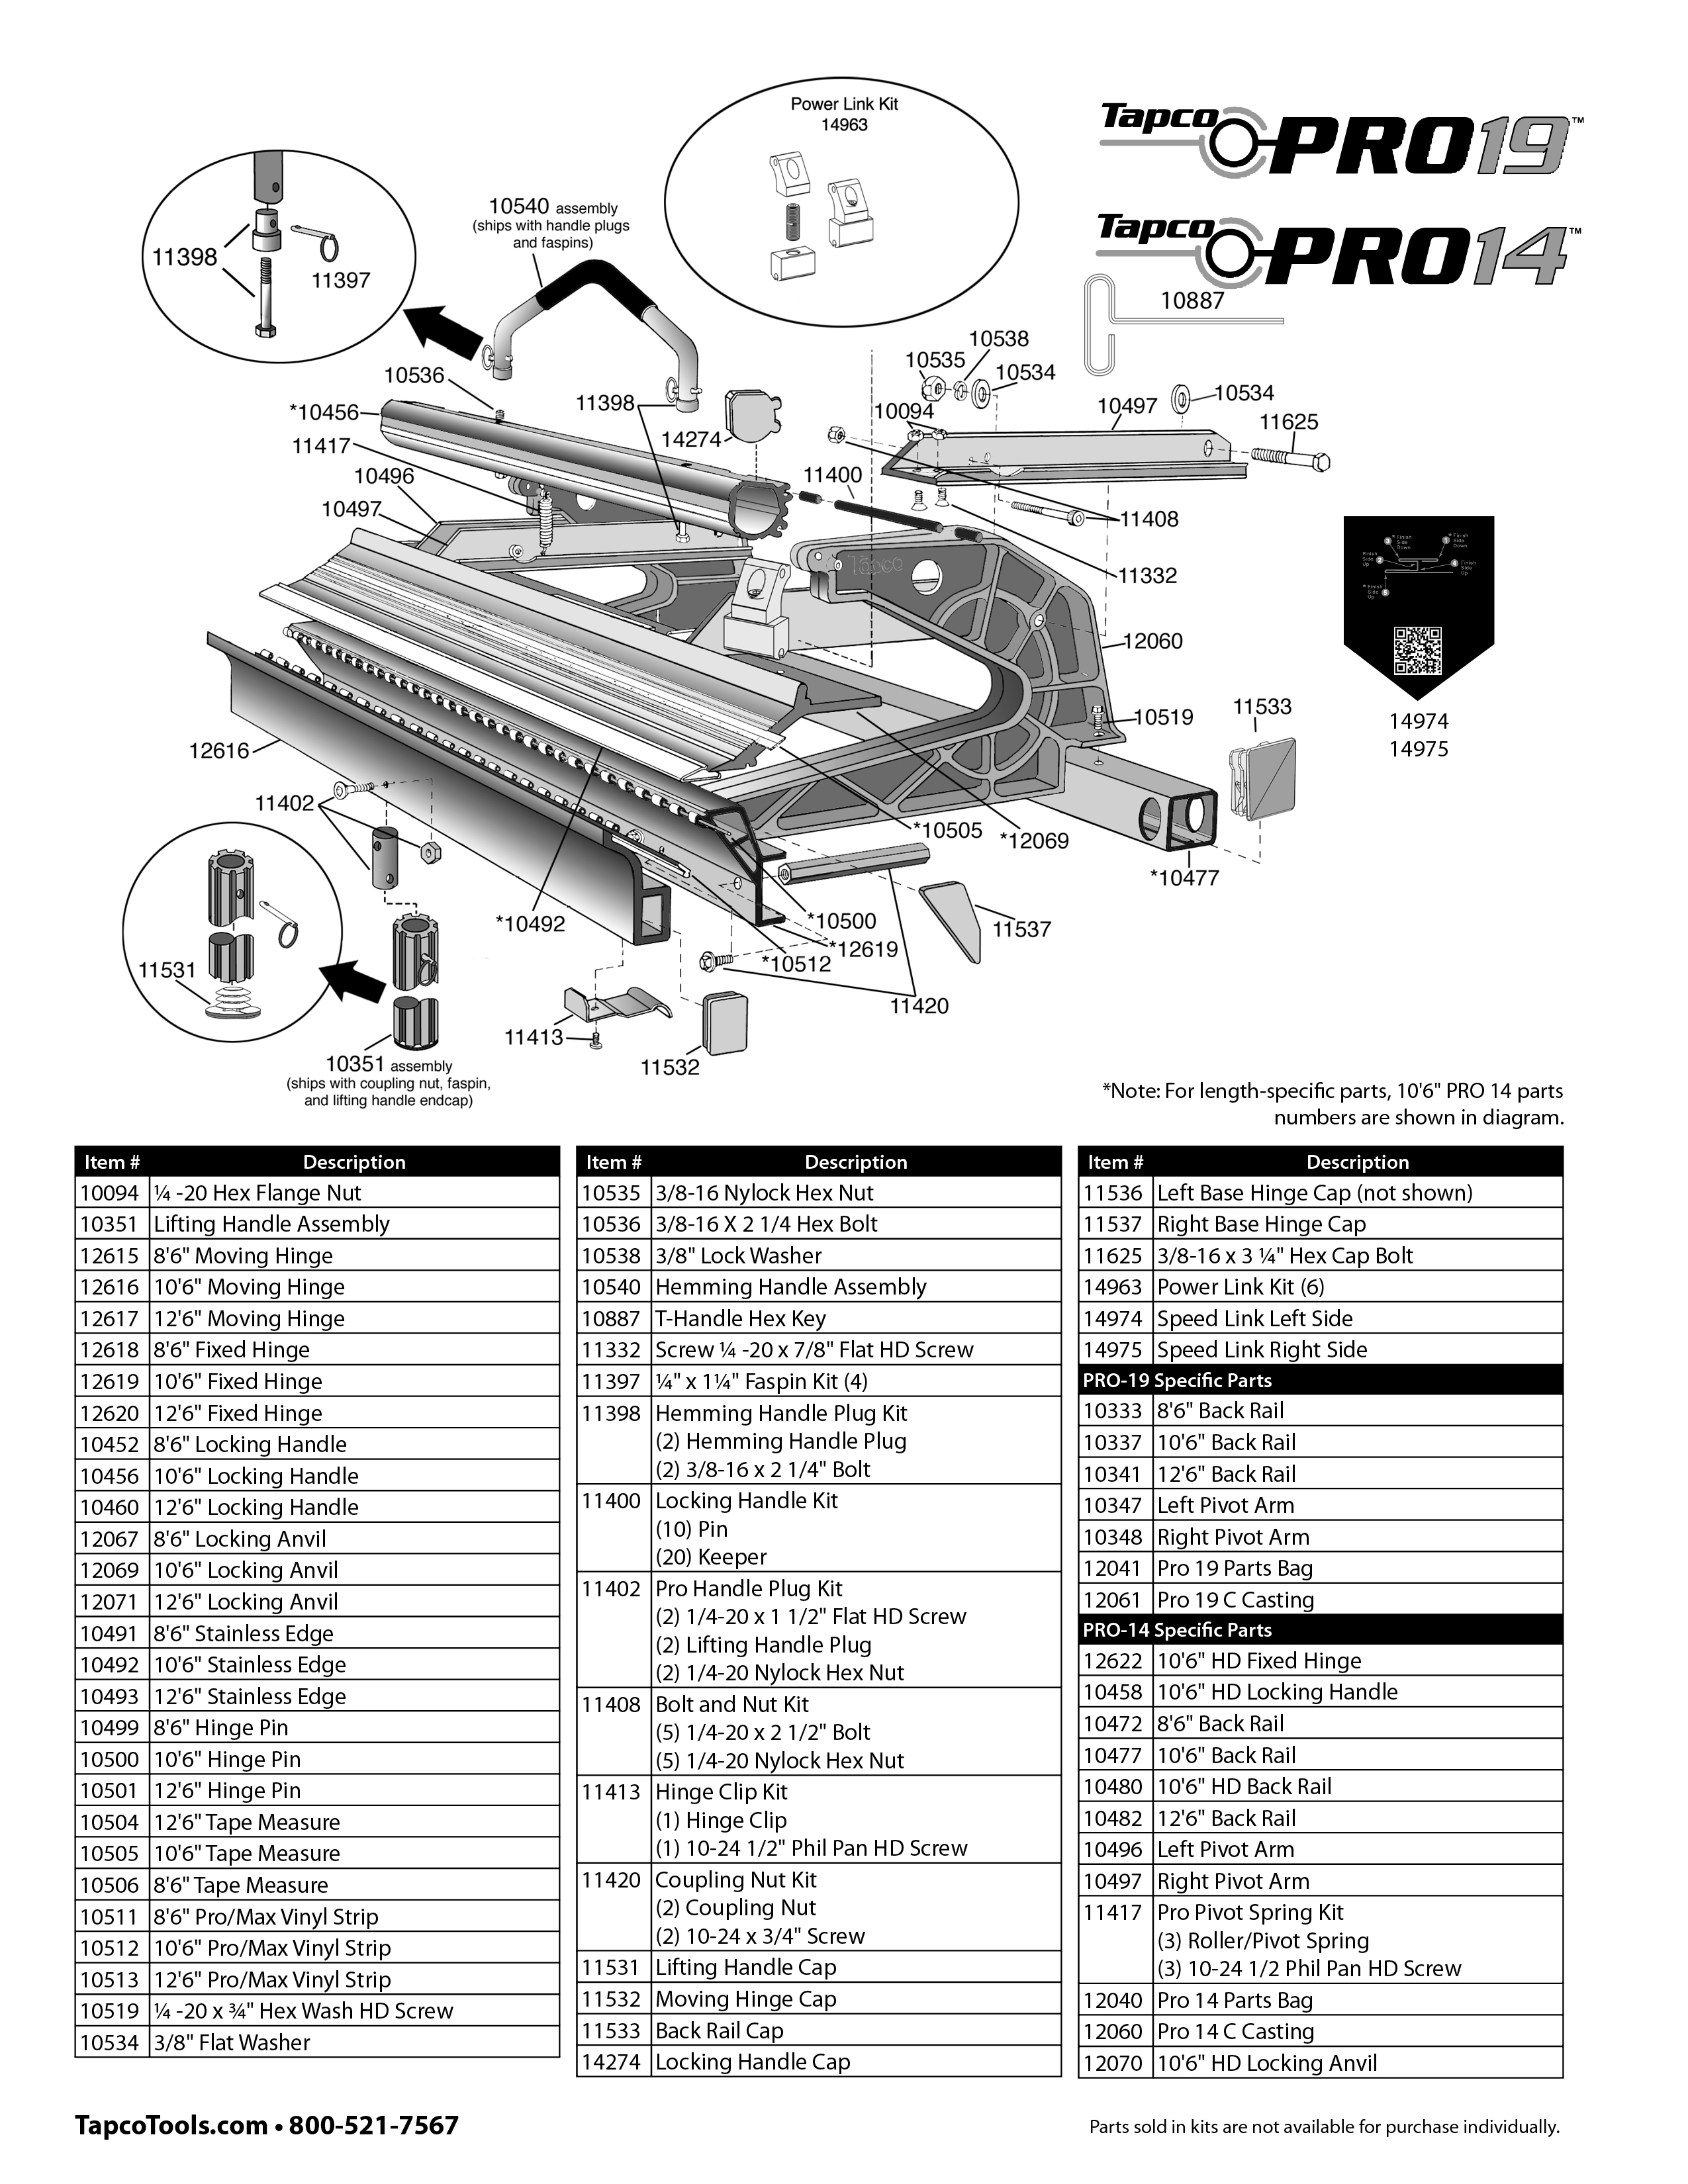 Tapco Pro 19 Replacement Parts From Buymbs